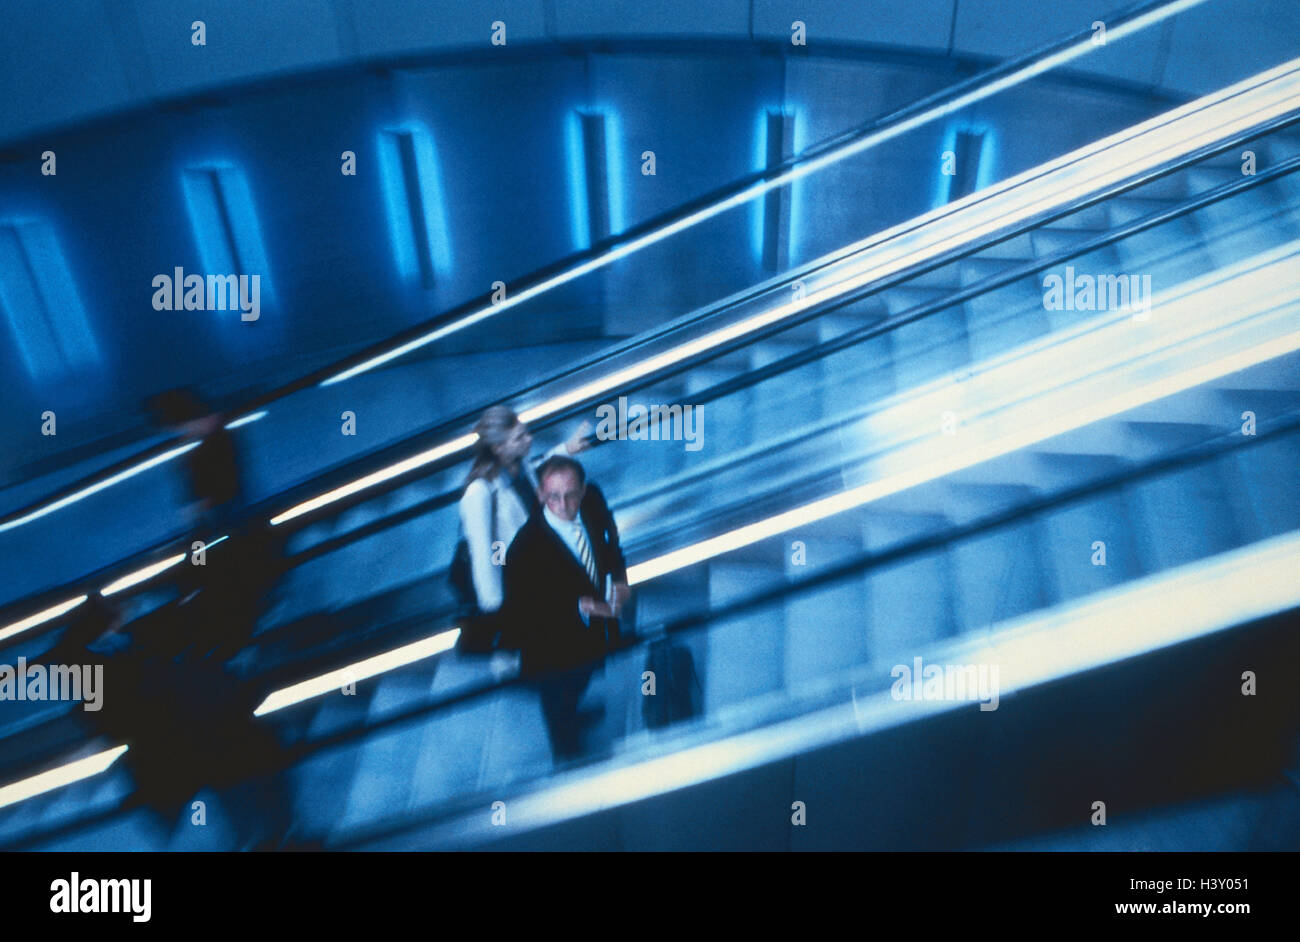 Airport terminals, detail, escalator, travellers, inside, airport, Dusseldorf, manager, upward, stairs, movably, - Stock Image